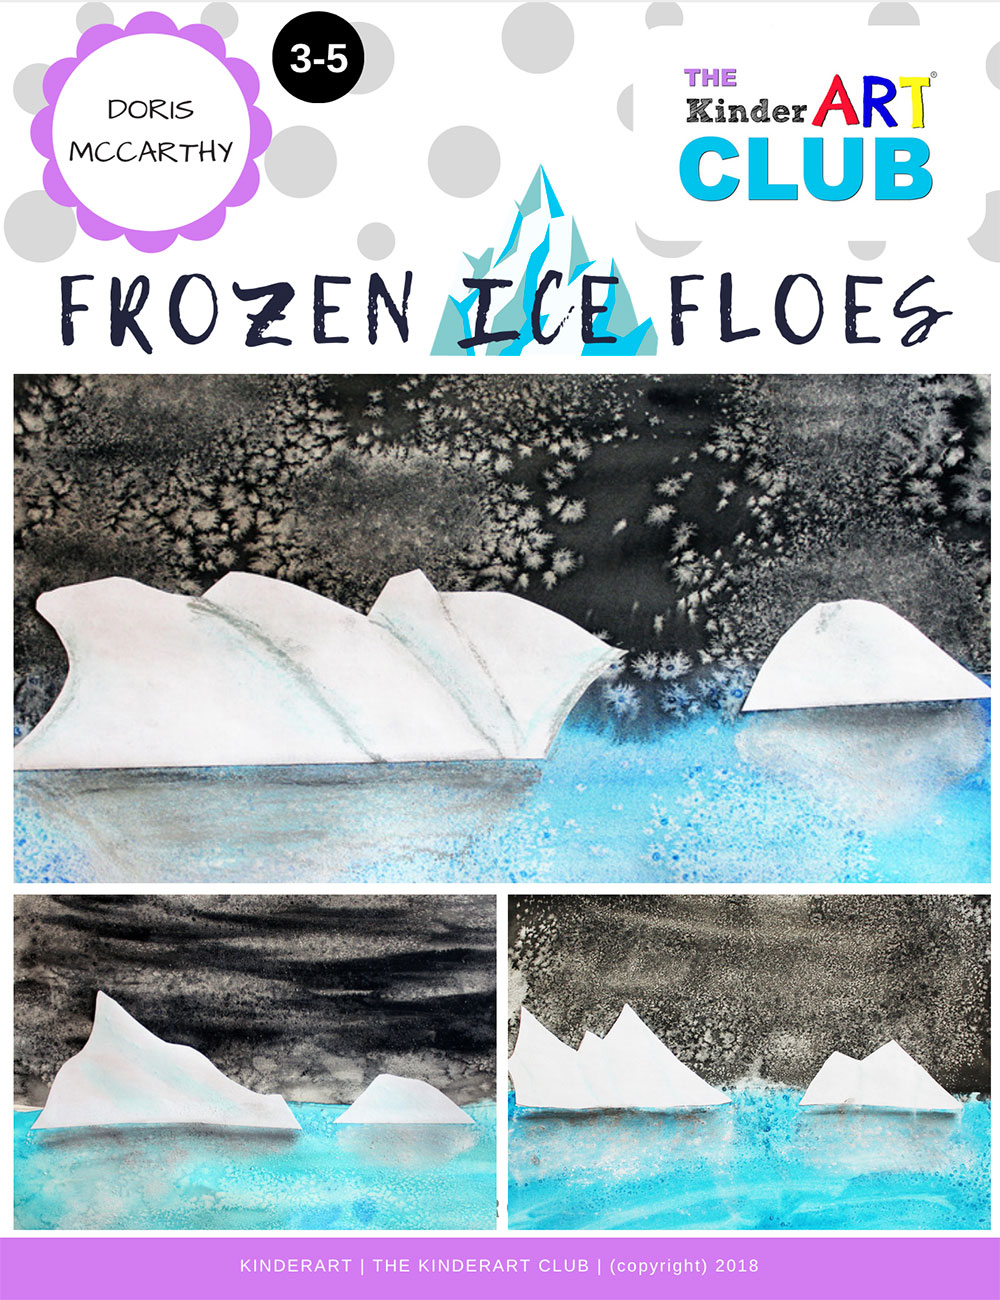 mccarthy_ice_floes